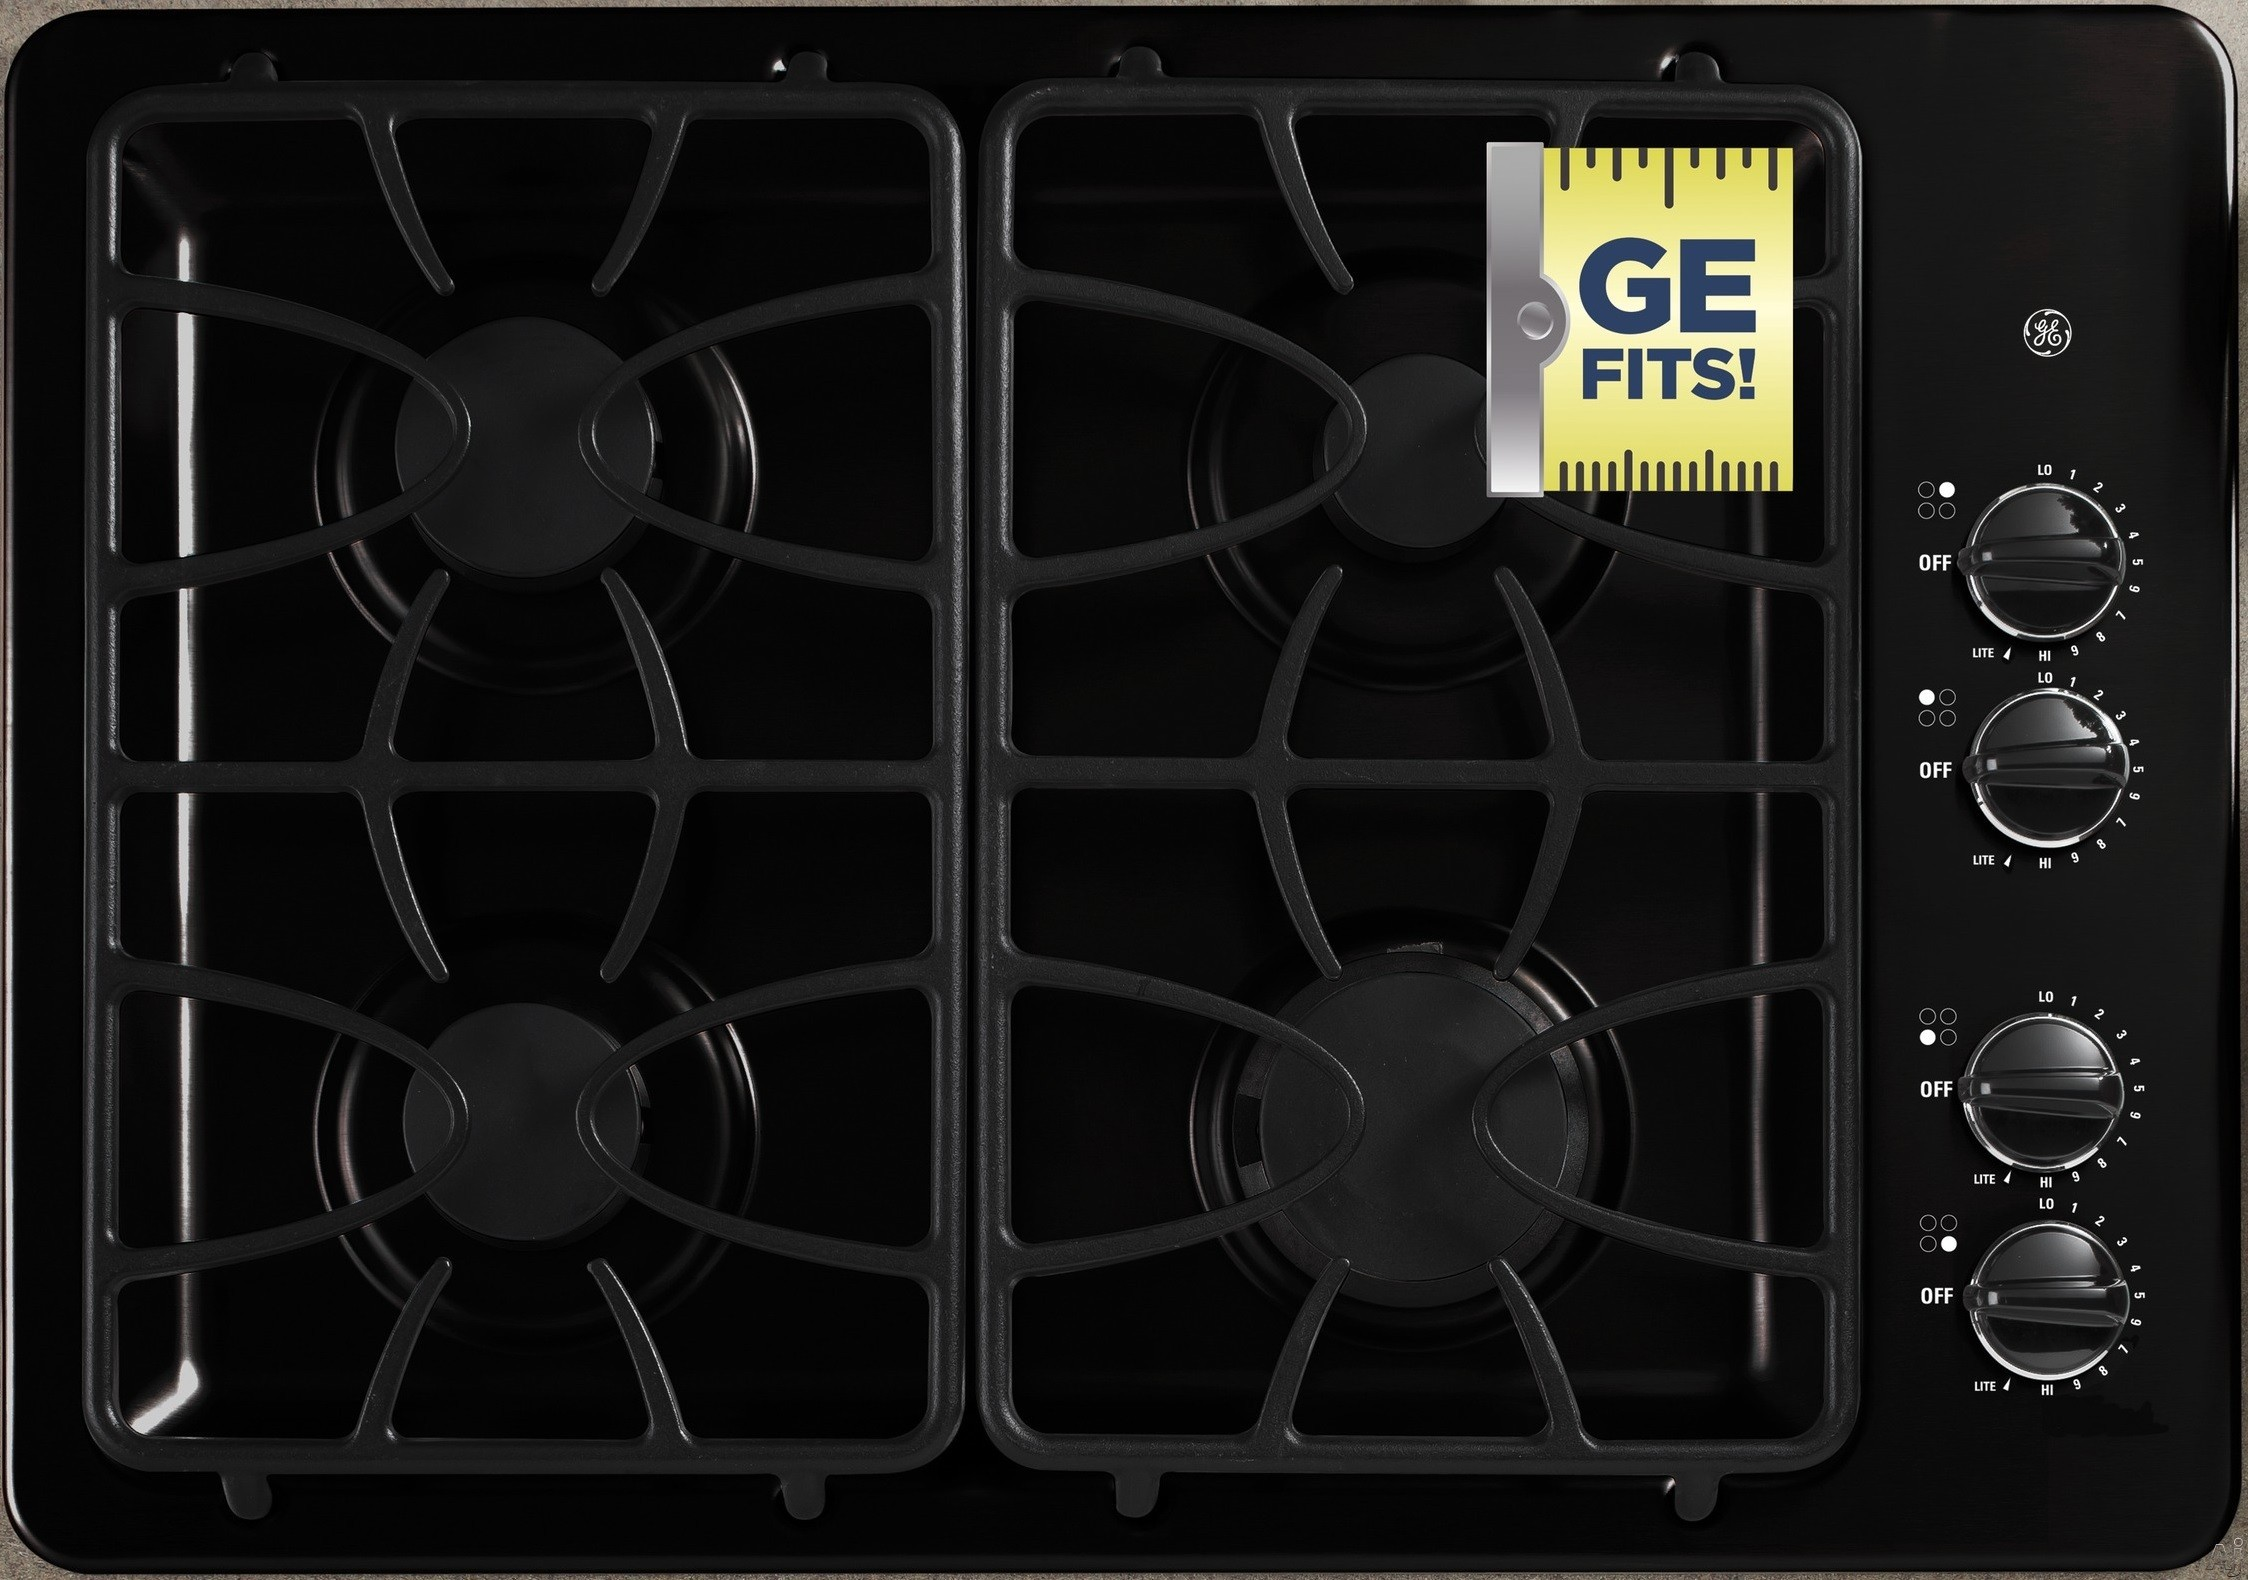 GE JGP329DETBB 30 Inch Gas Cooktop with 4 Sealed Burners, 11,000 BTU Burner, Precise Simmer Burner, Matte Grates, Dishwasher-Safe Knobs, ADA Compliant and GE Fits! Guarantee: Black